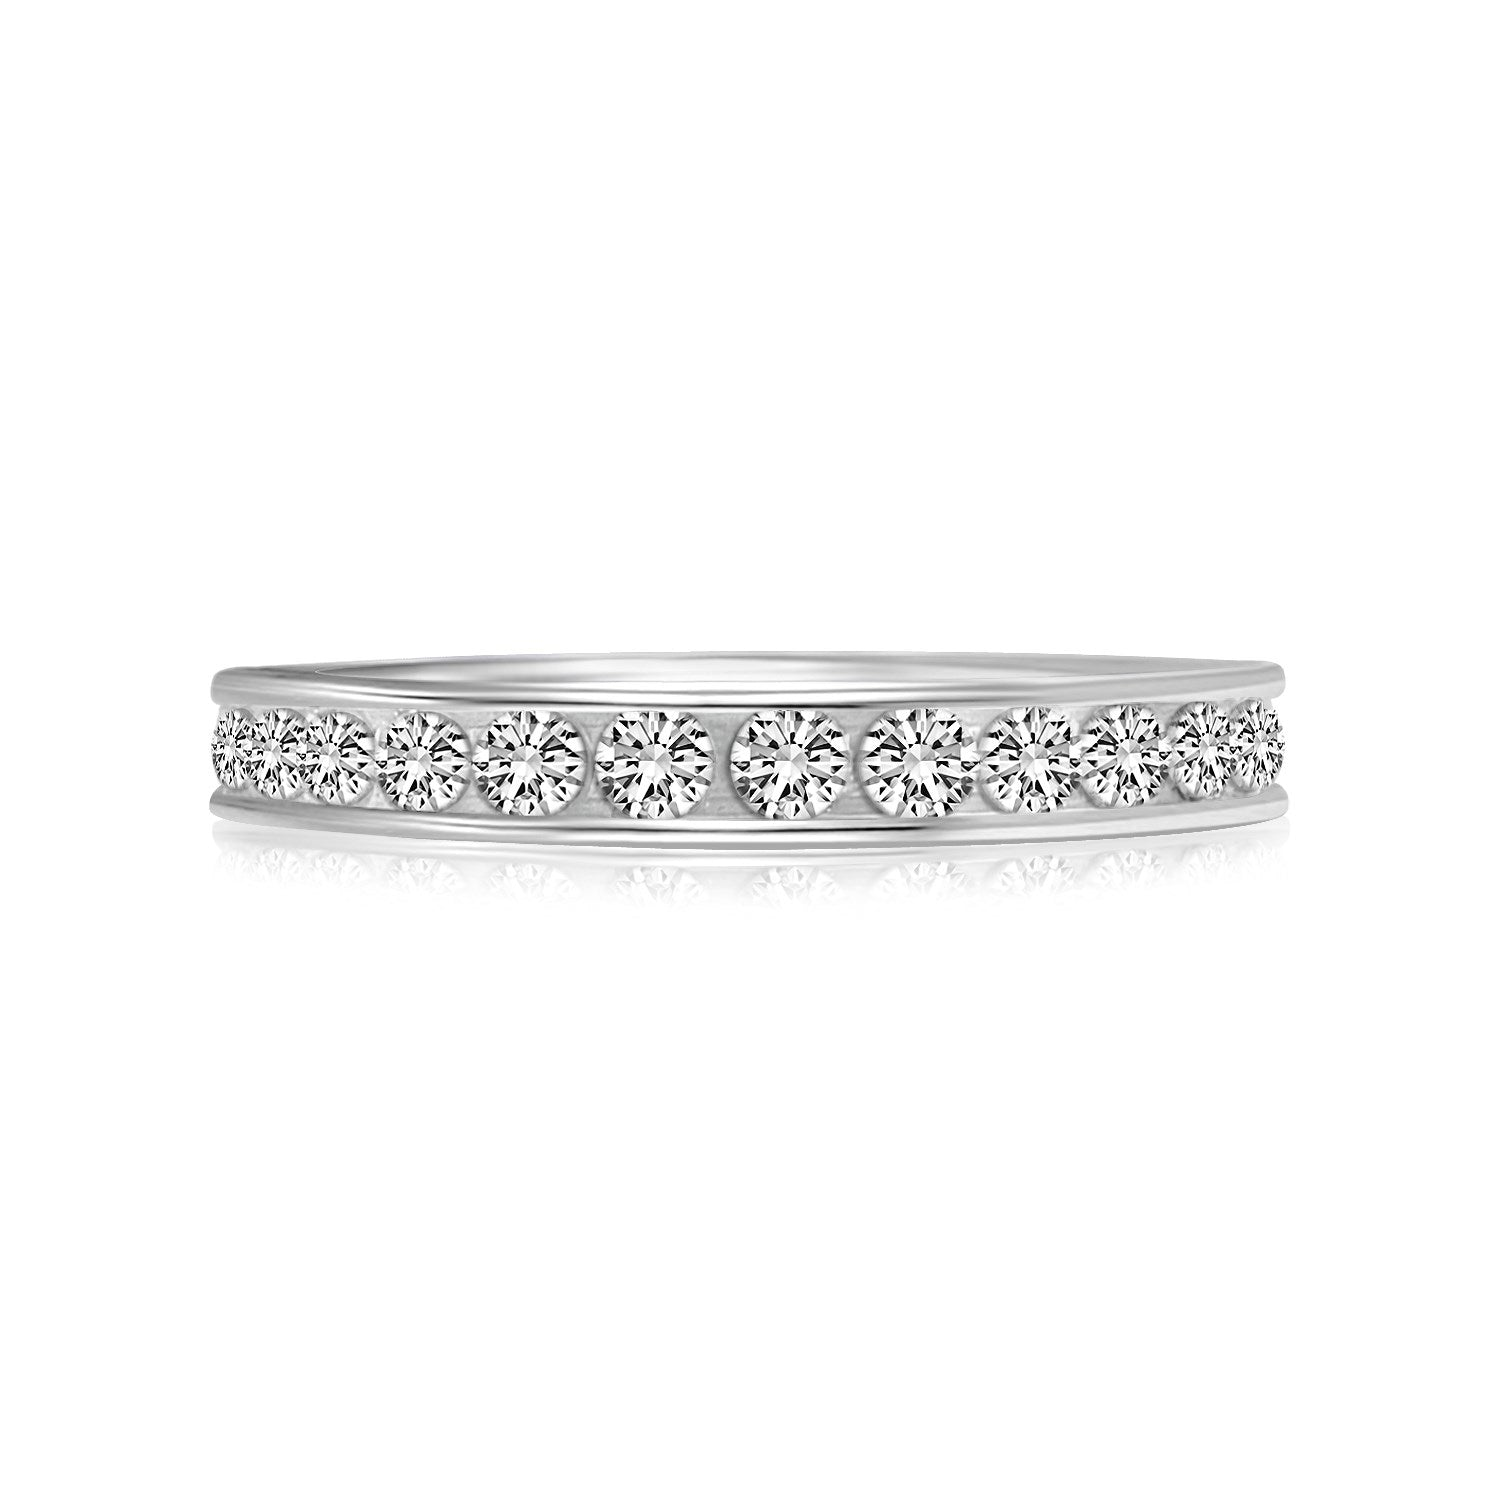 Sterling Silver Rhodium Plated Toe Ring with White Cubic Zirconia Embellishments - Uniquepedia.com